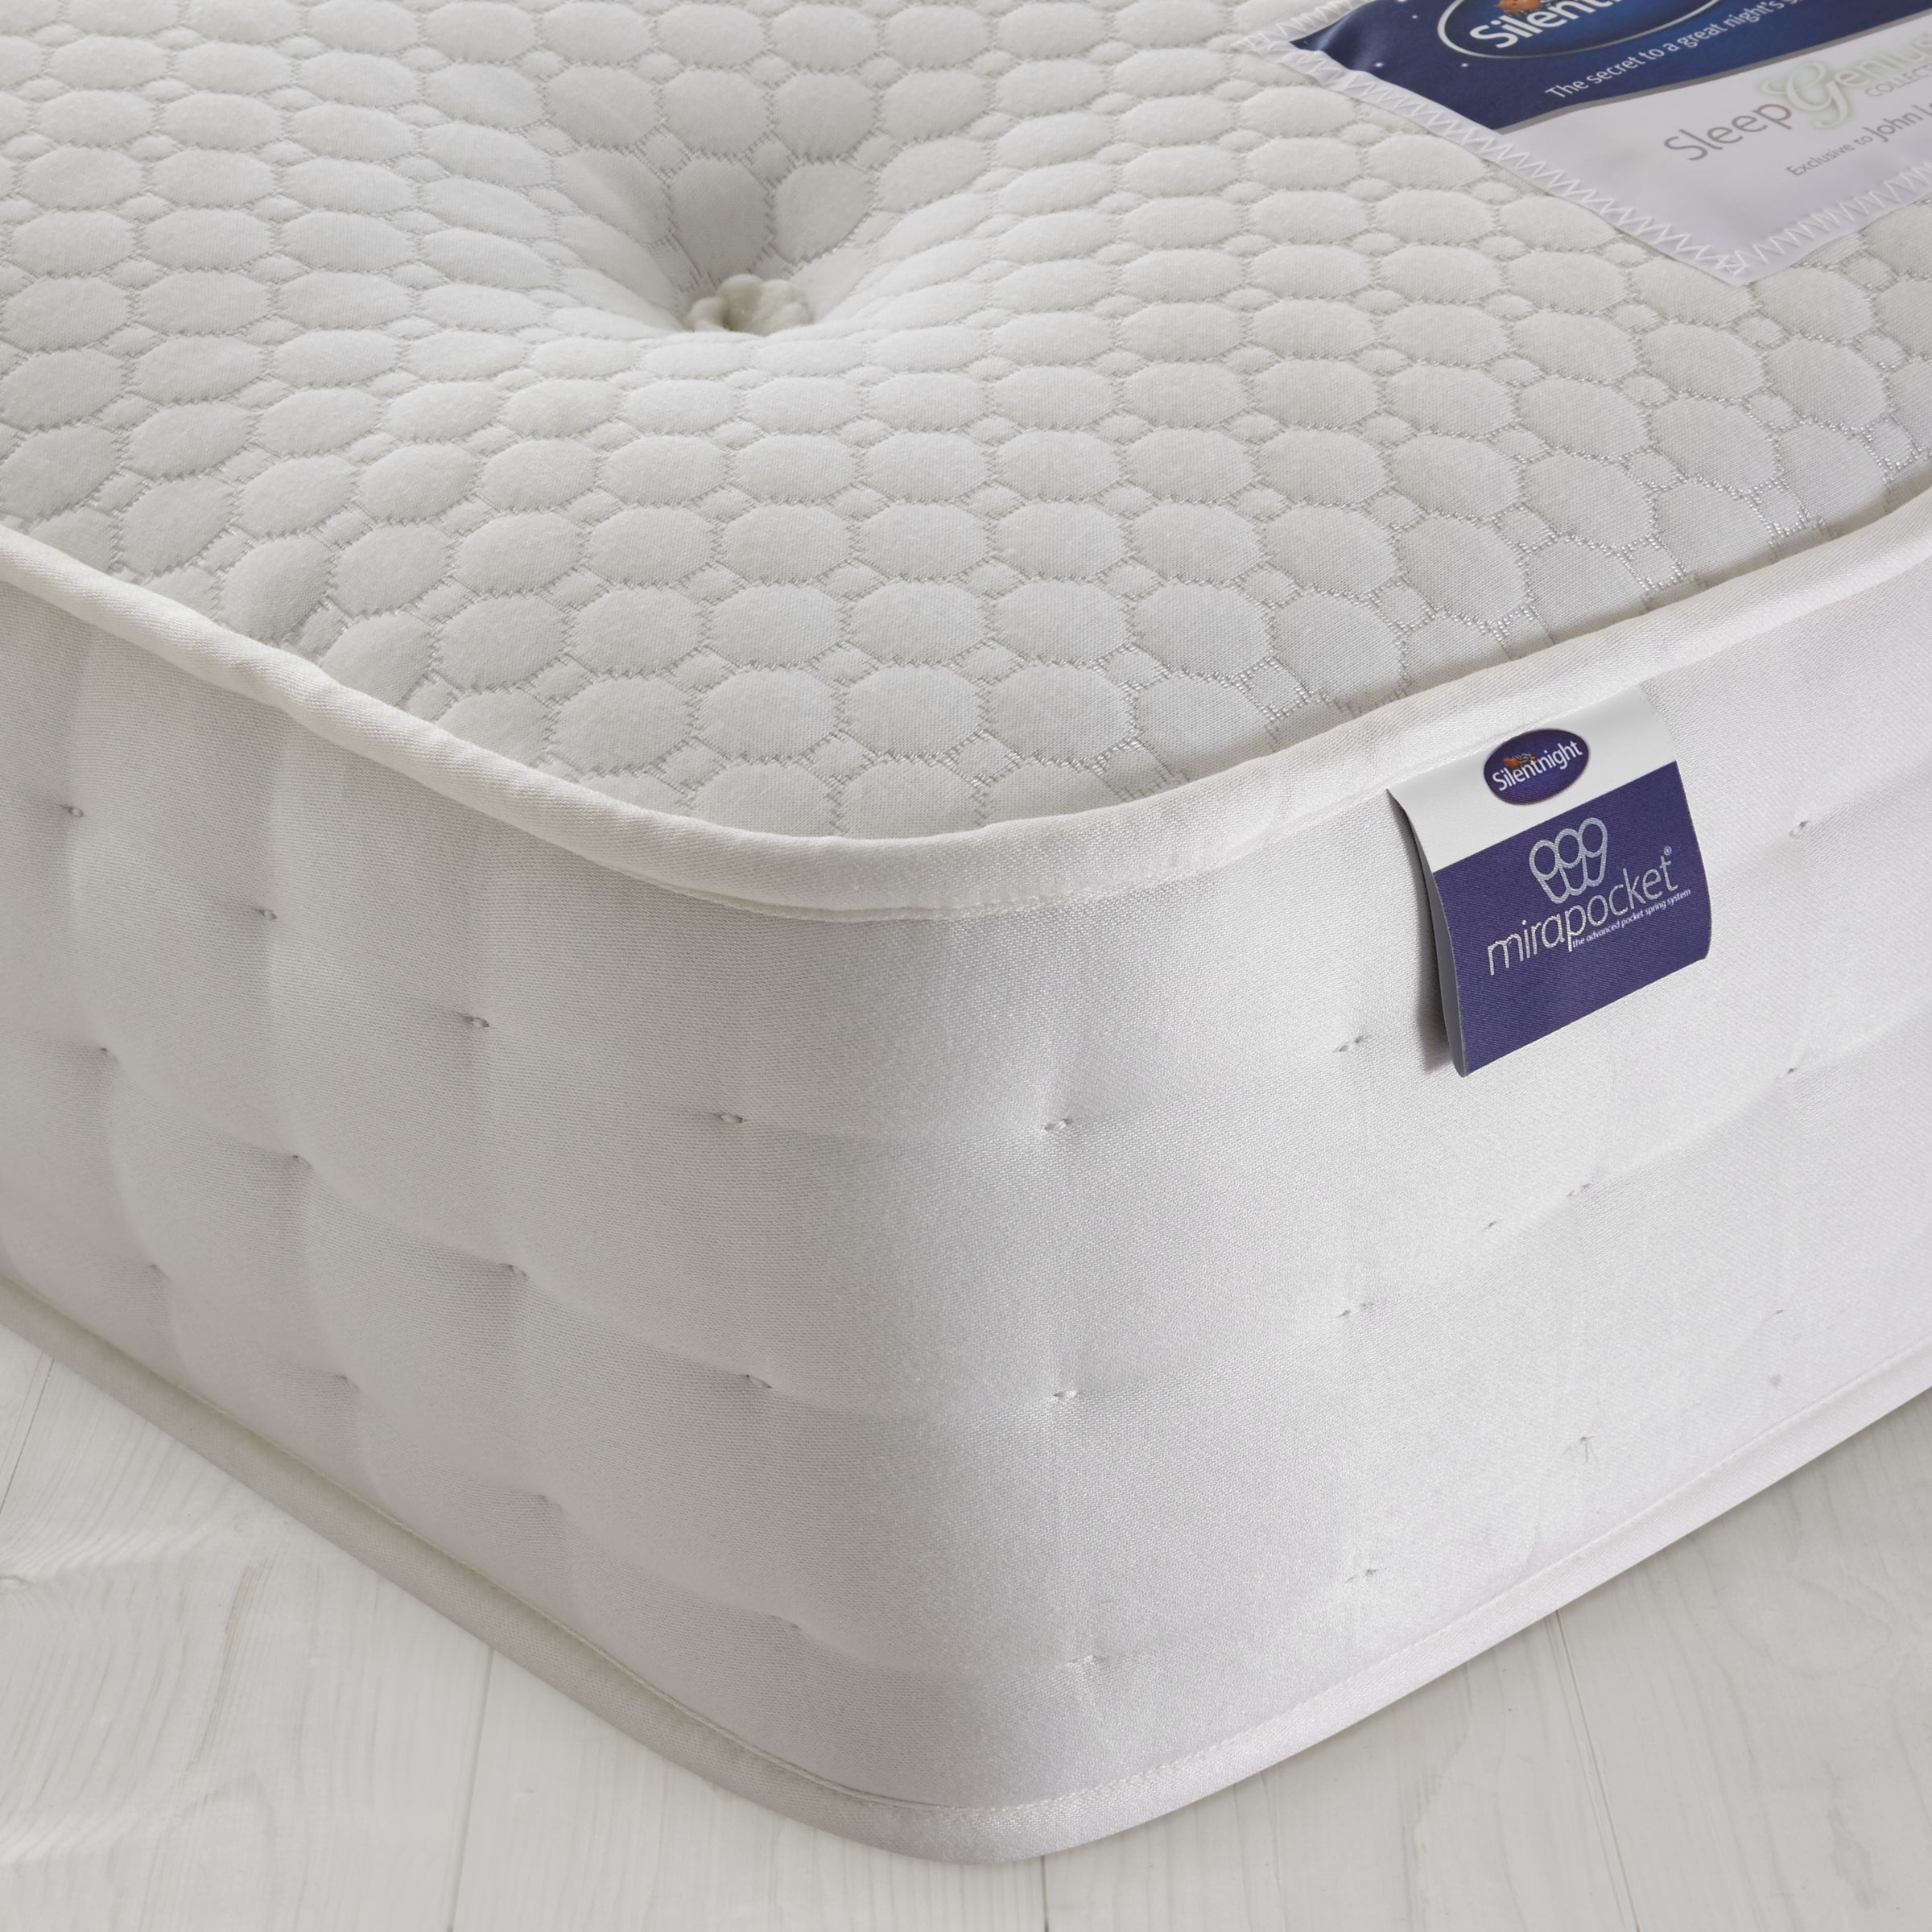 Silentnight Mirapocket 1200 Memory Mattress, Double